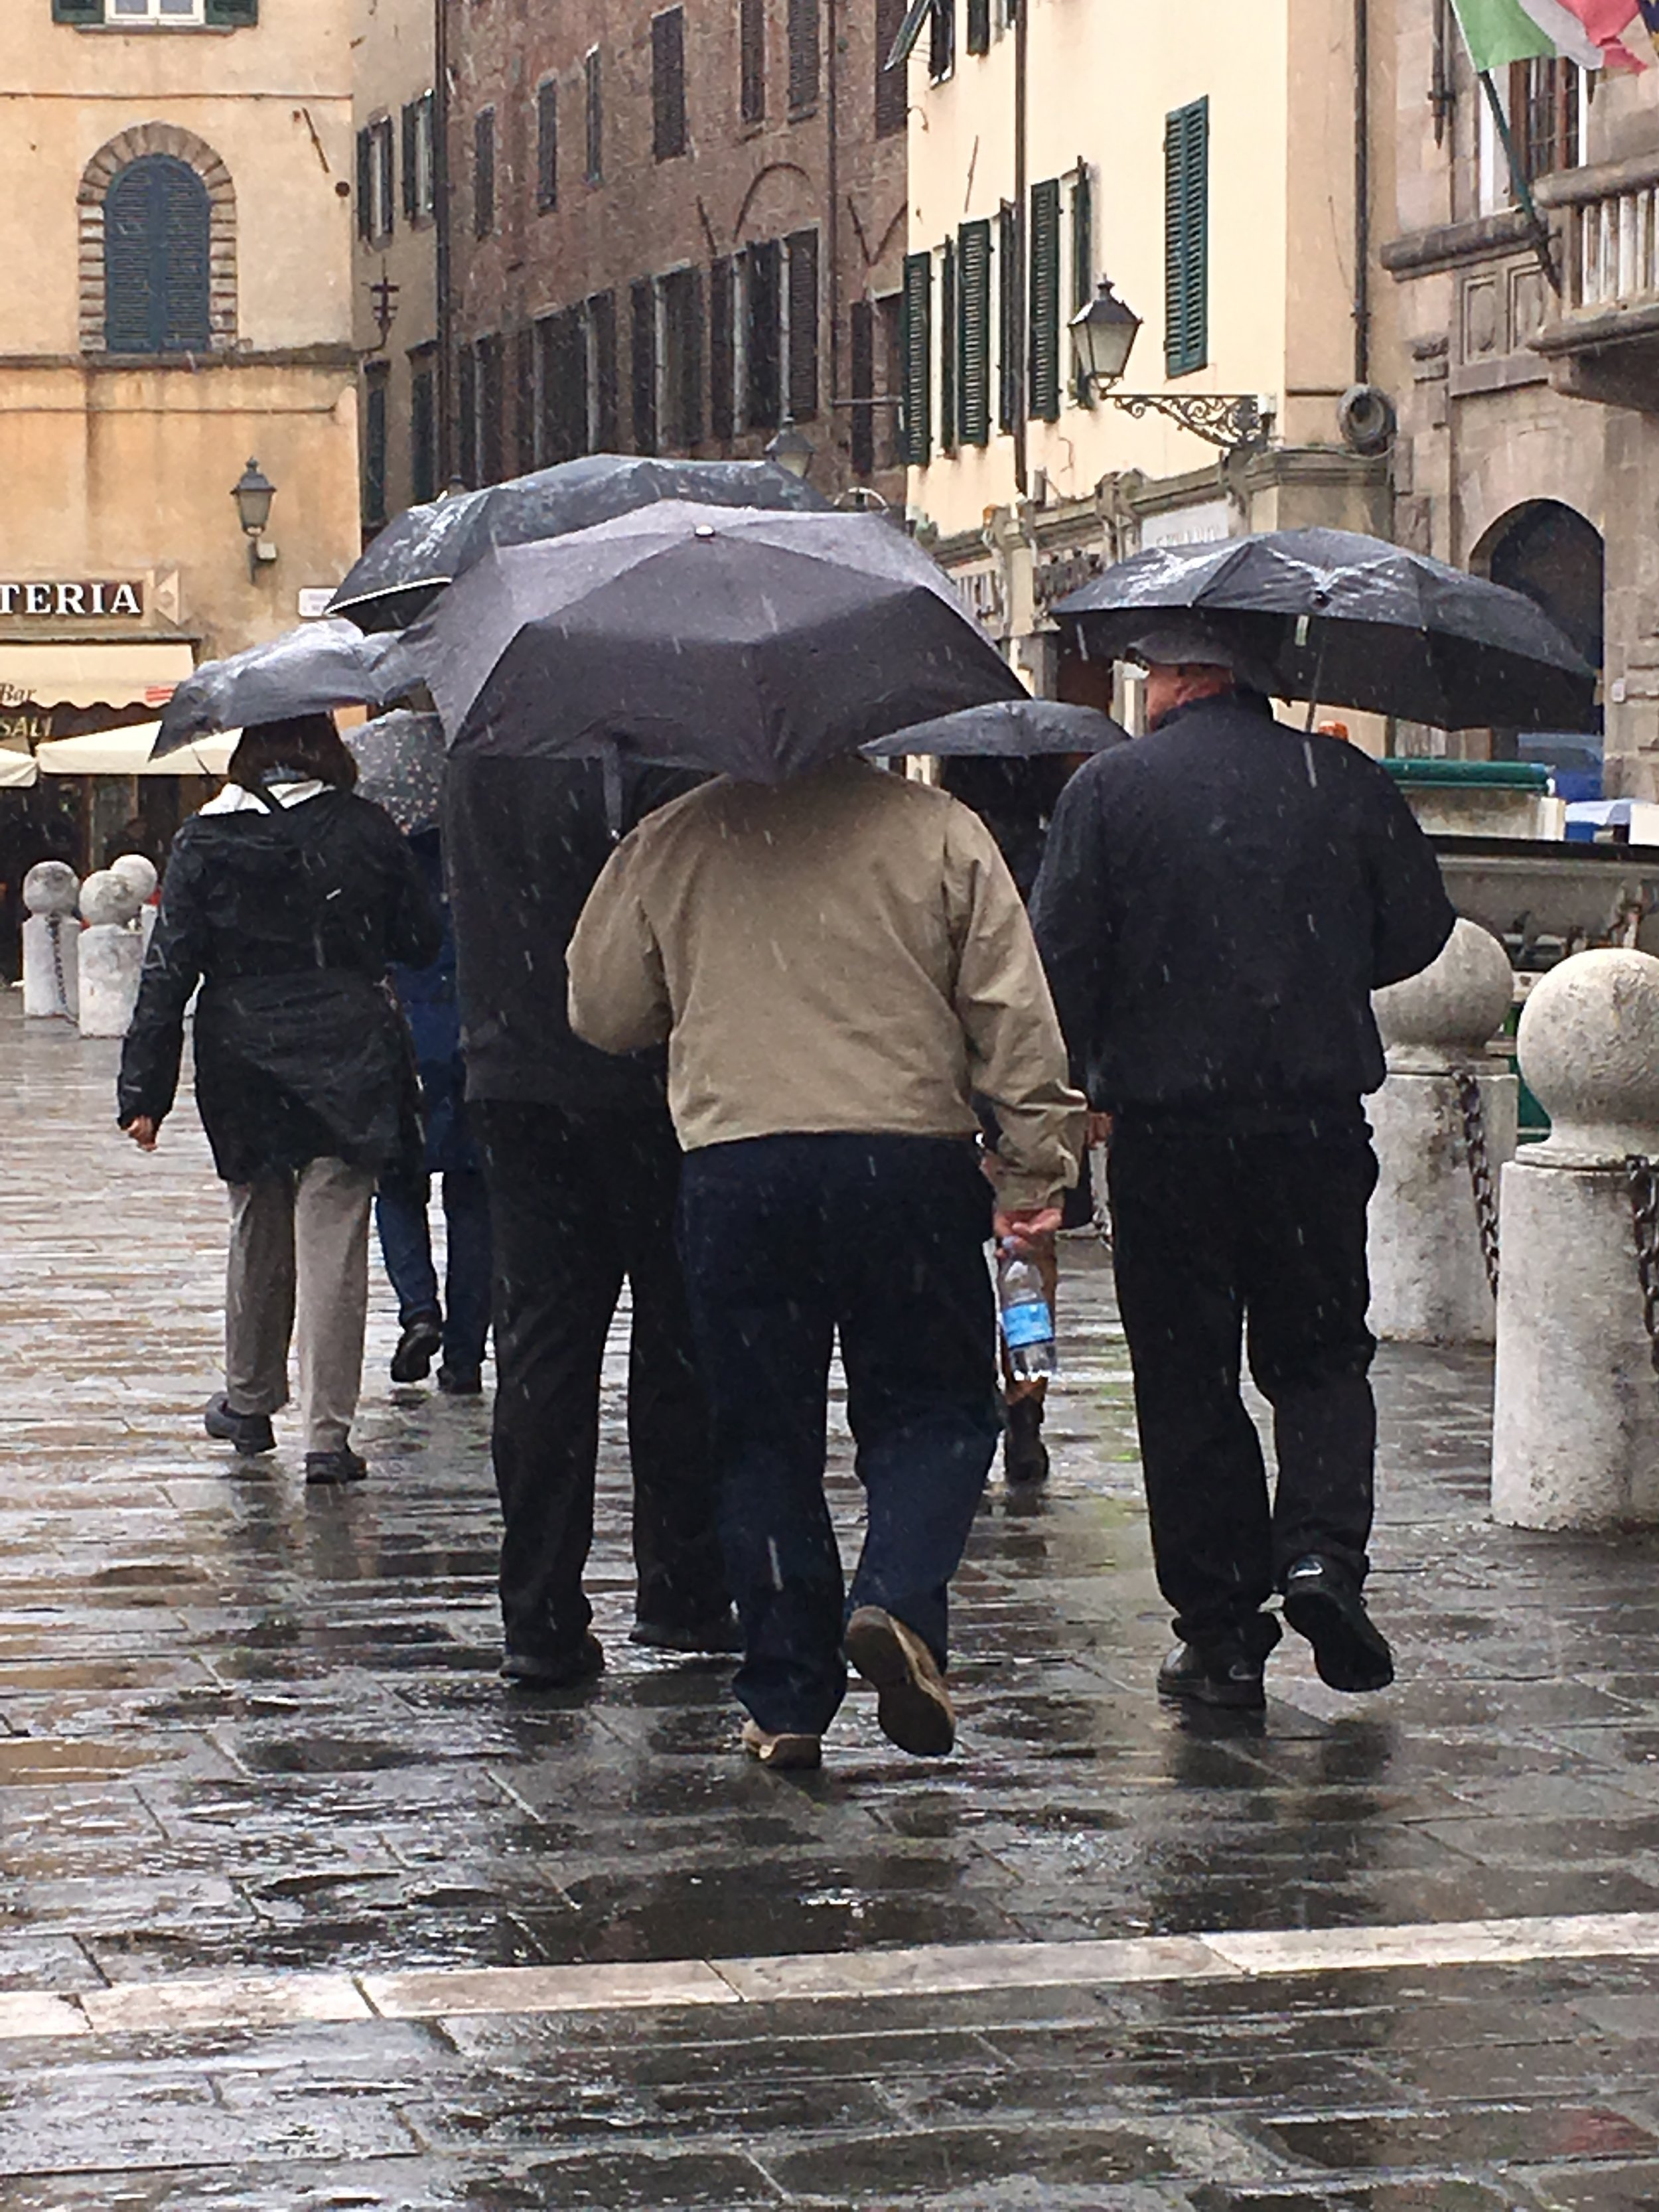 A group of tourists out and about despite the rain.